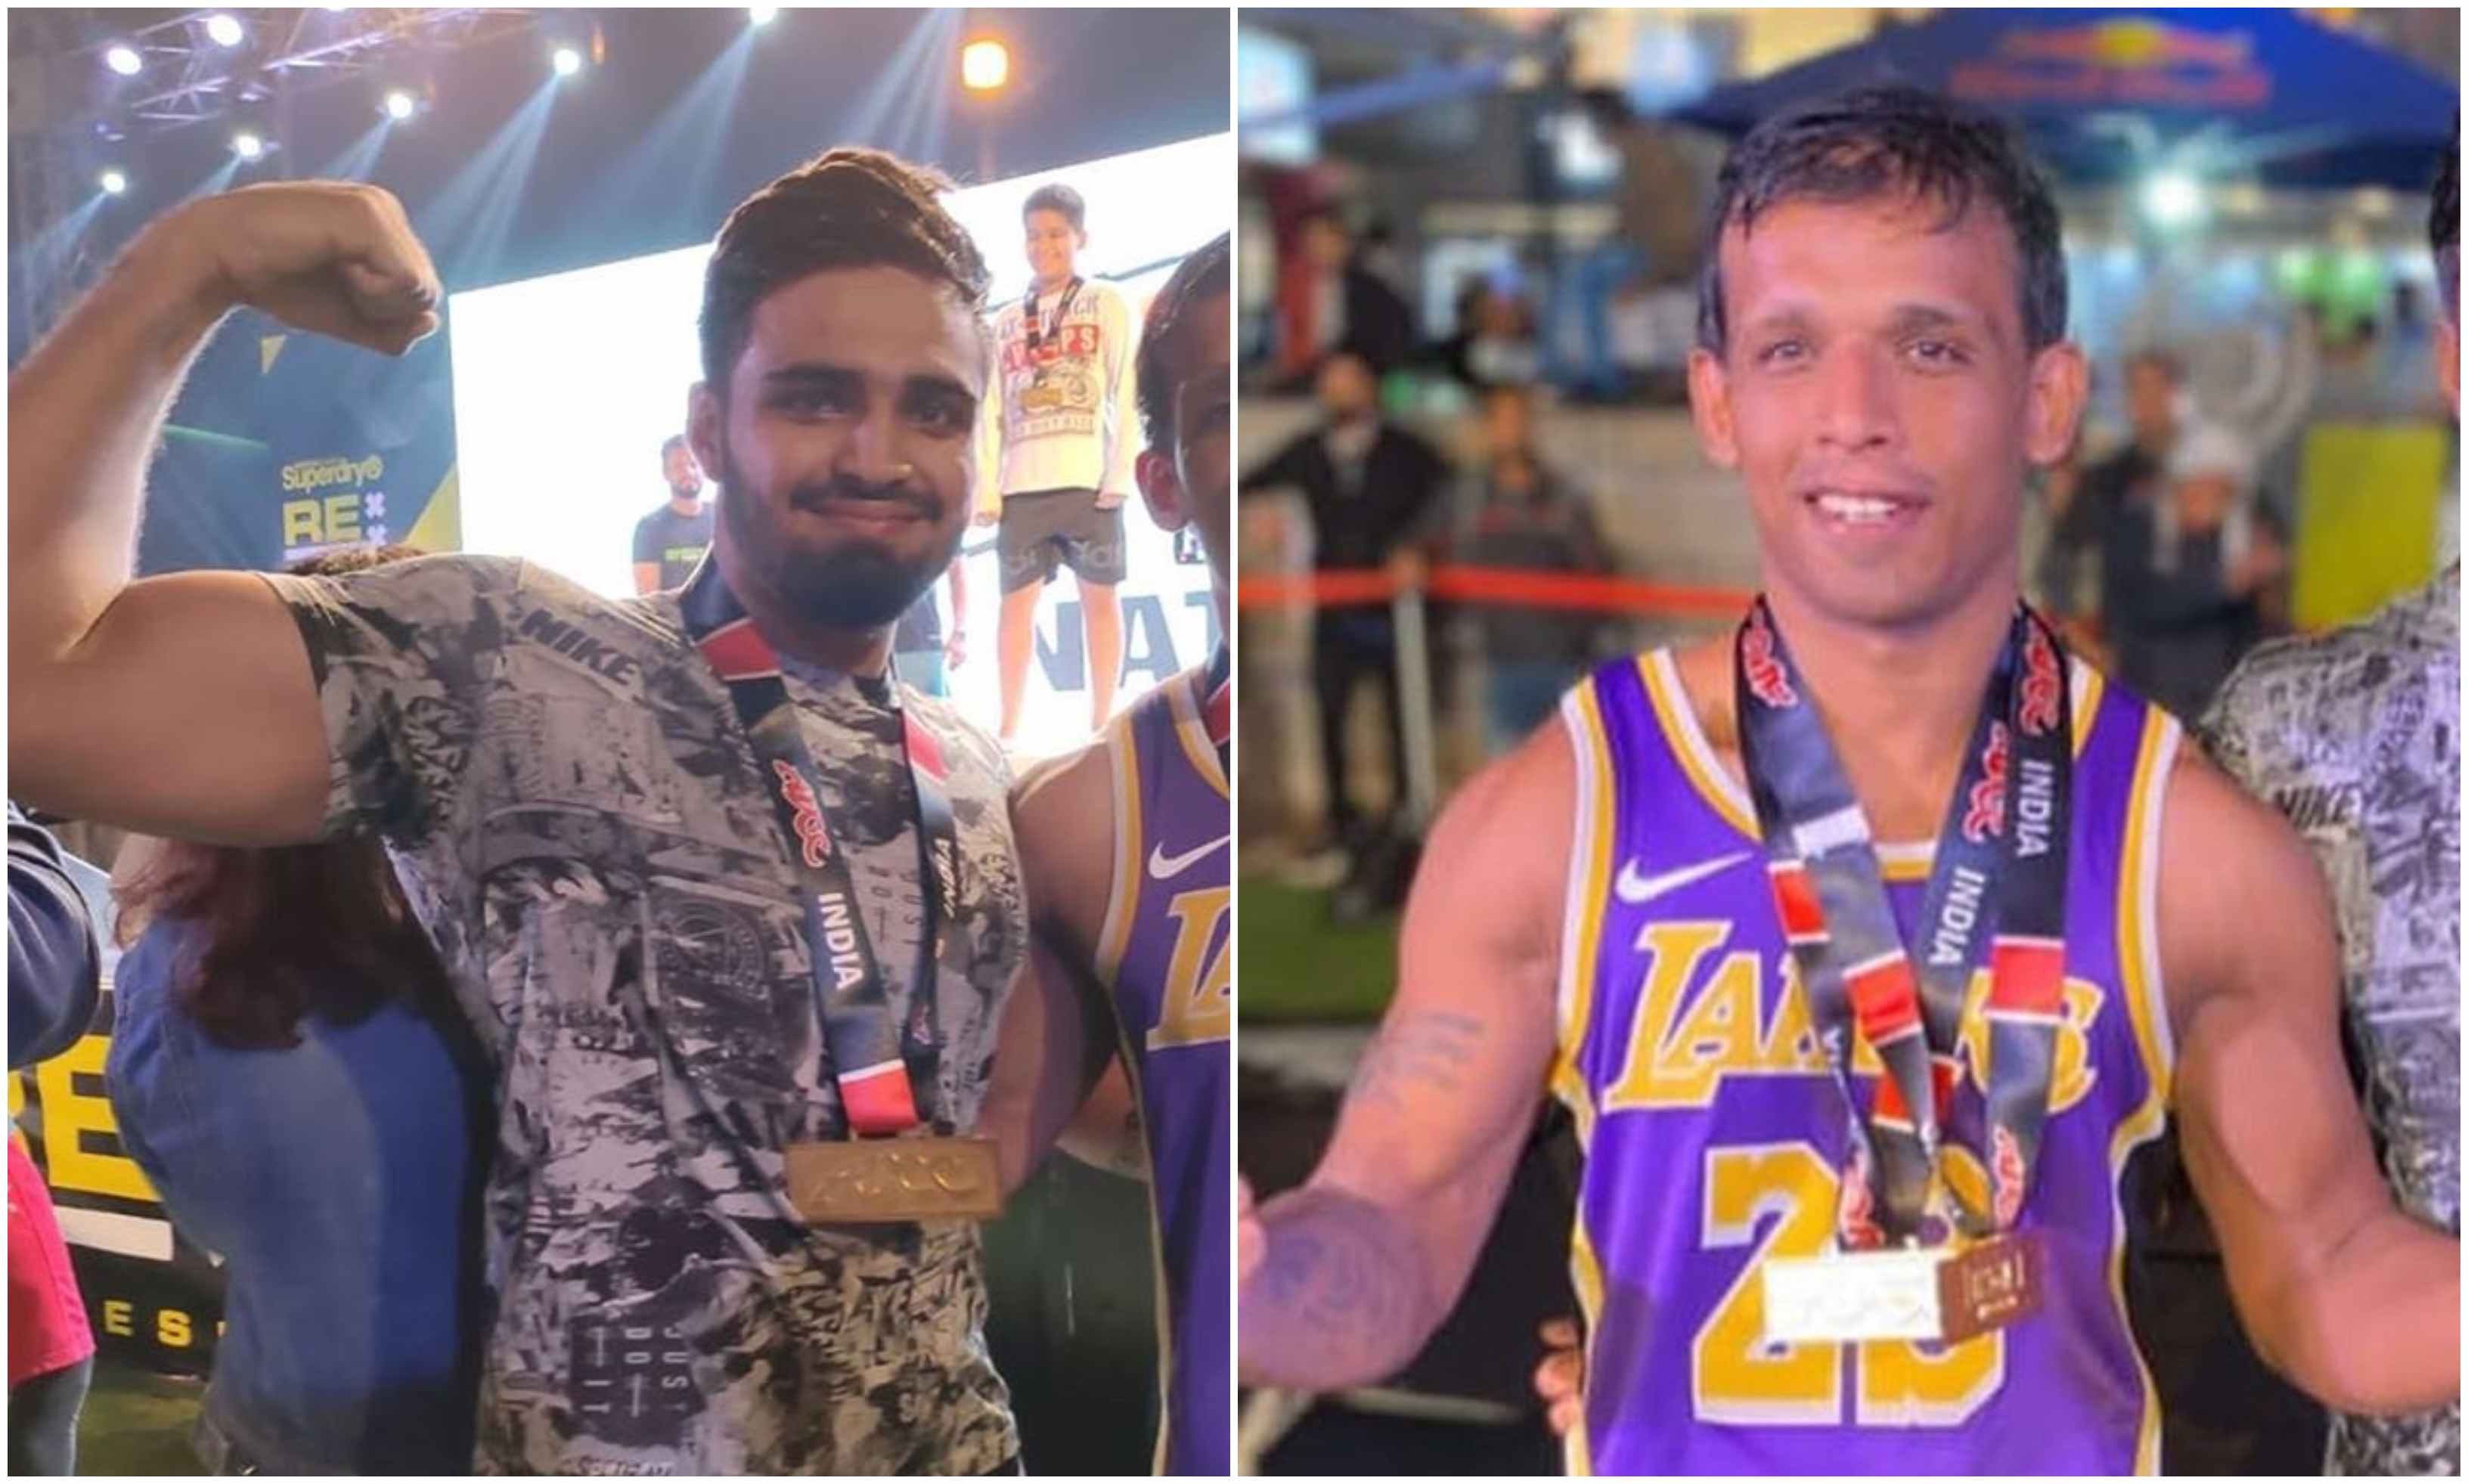 Rayyan Butt and Sahil Dahiya of Team Relentless strike gold at ADCC! - sAHIL